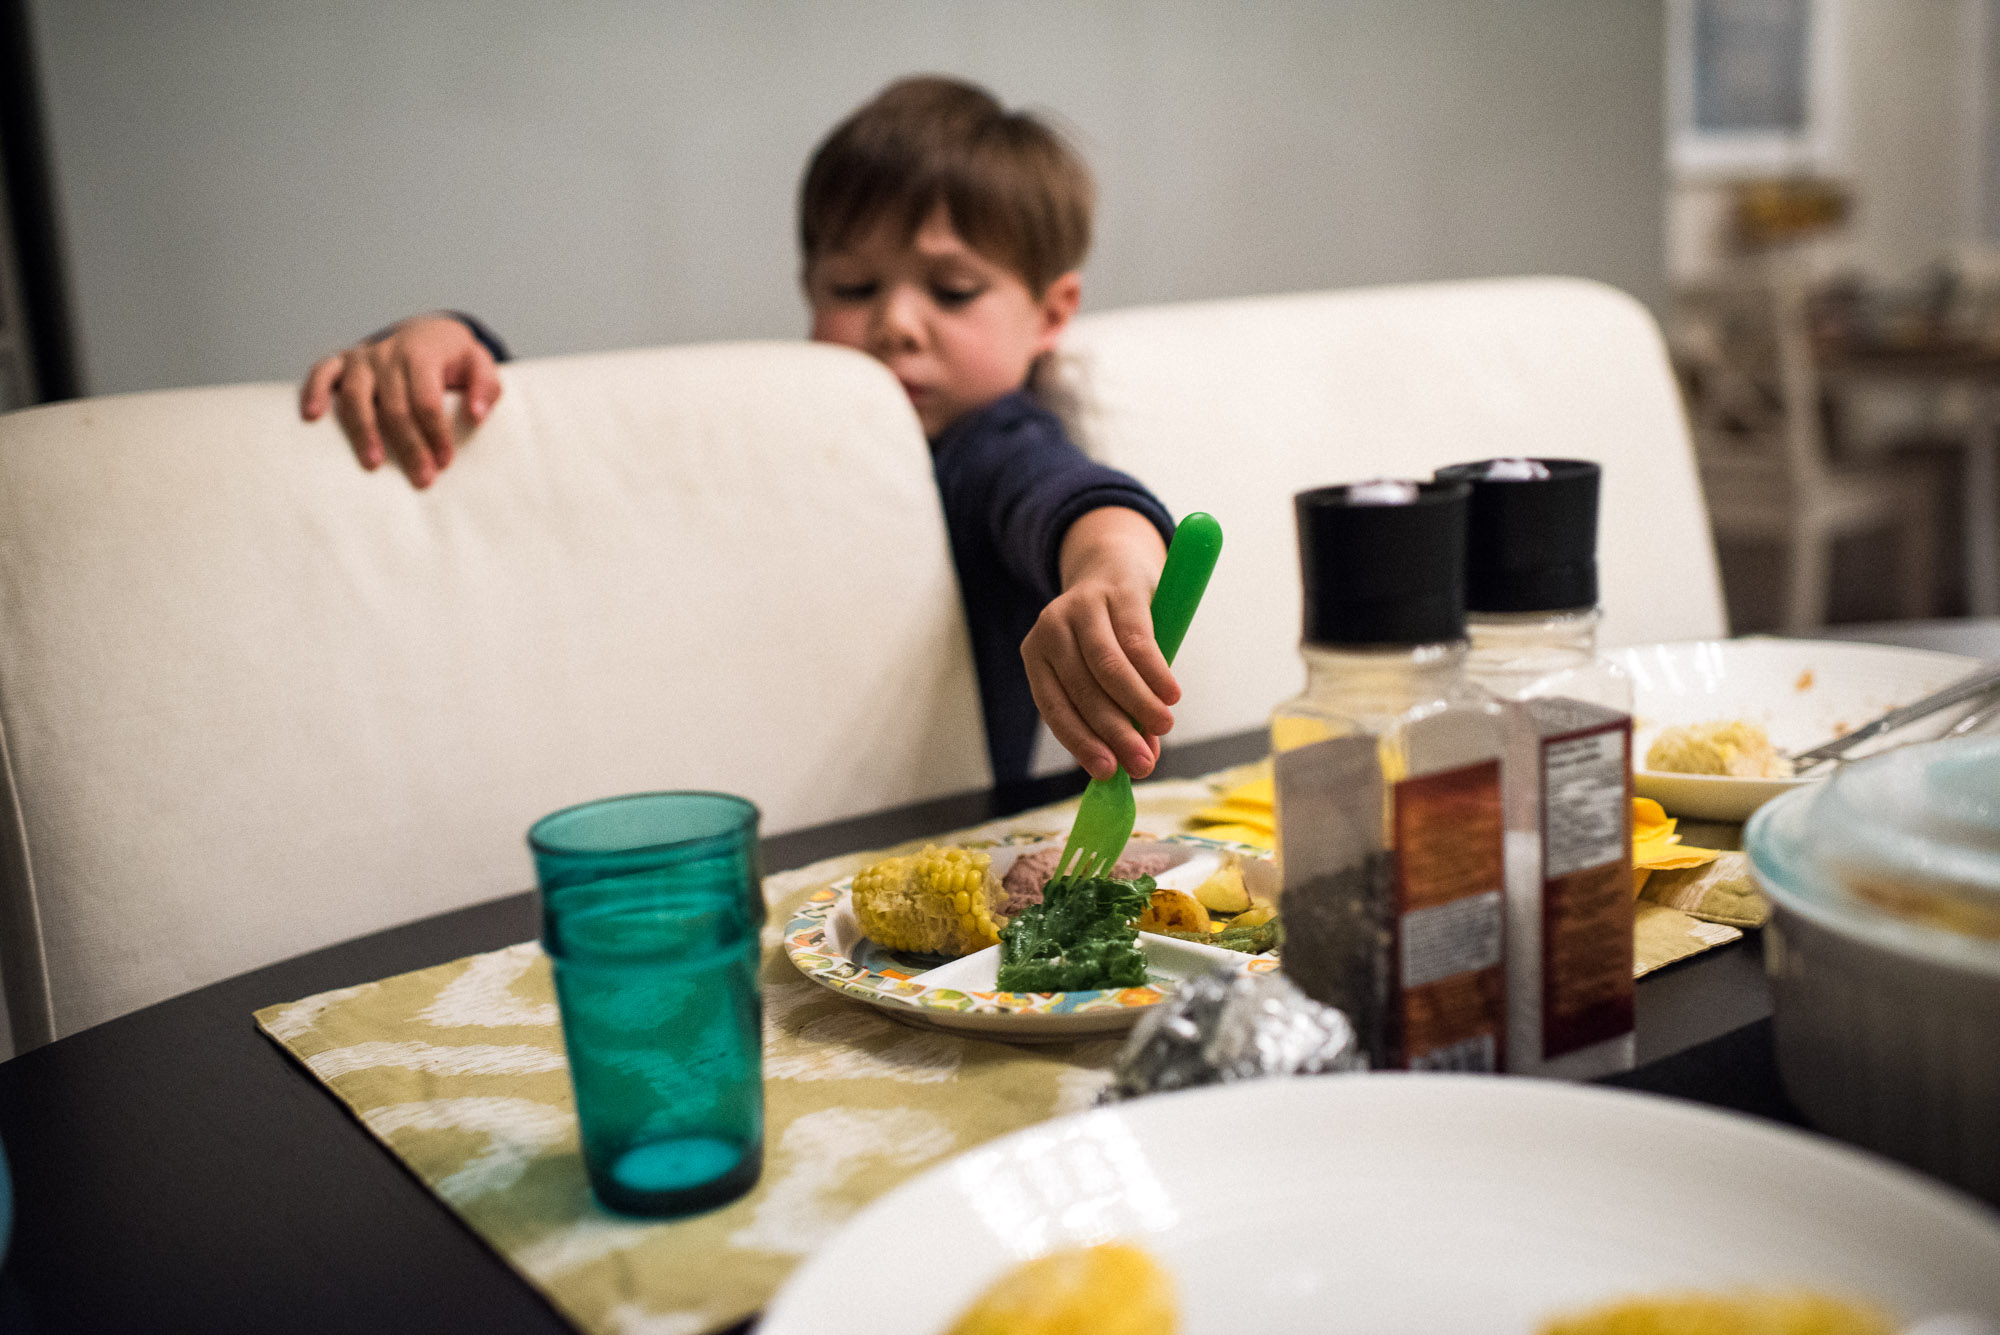 boy reaches between chairs to fork lettuce off a plate